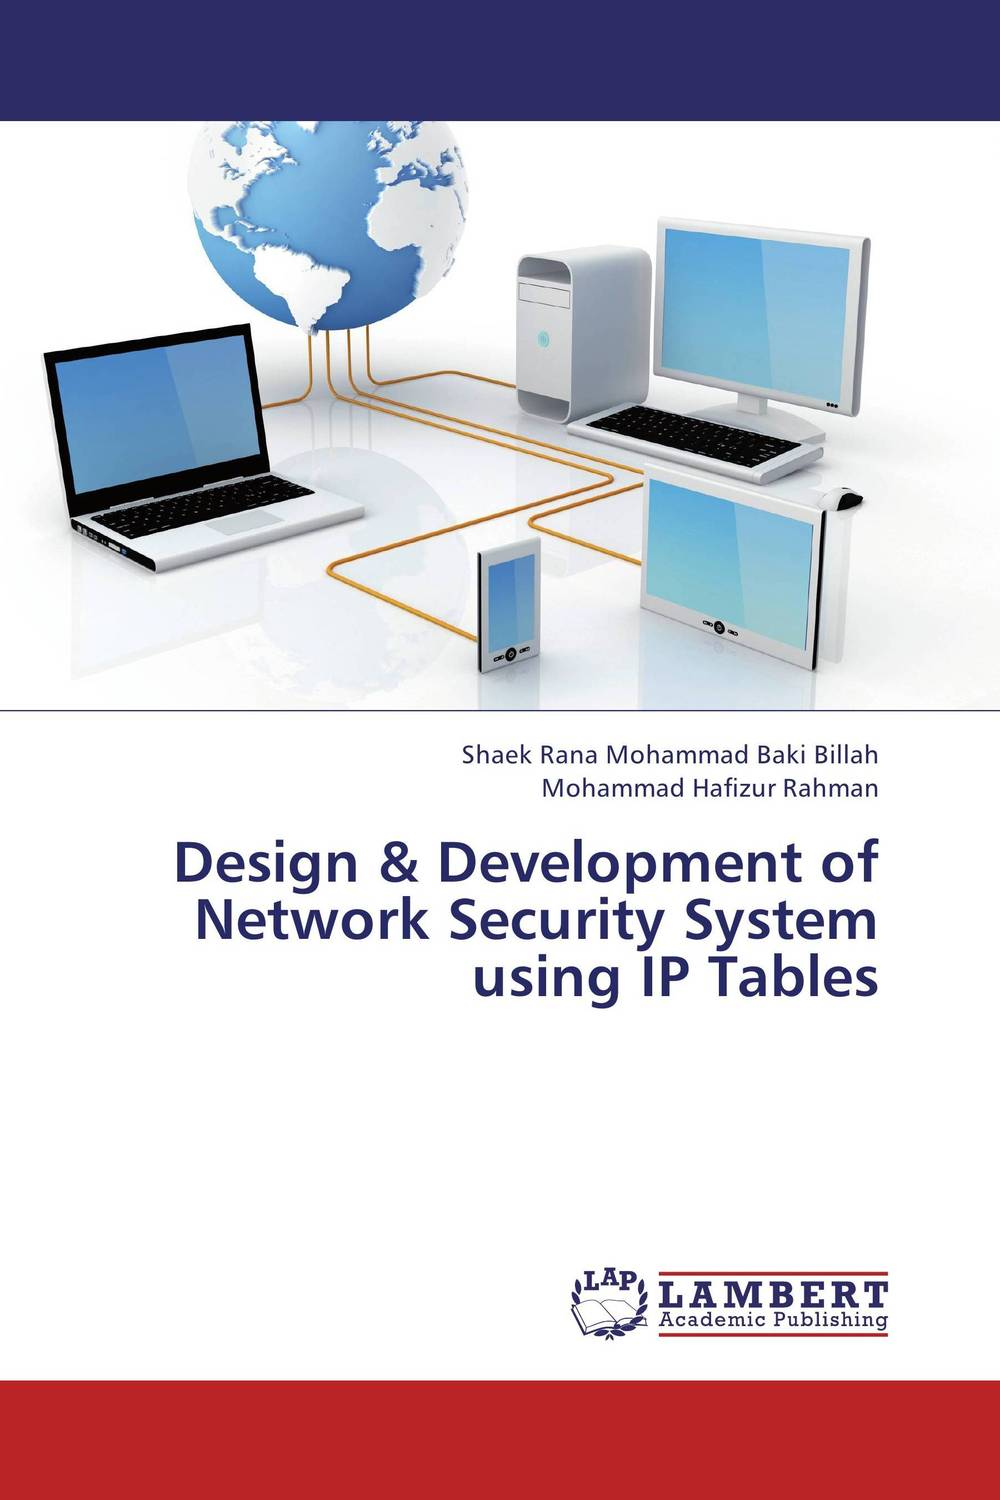 Design & Development of Network Security System using IP Tables belousov a security features of banknotes and other documents methods of authentication manual денежные билеты бланки ценных бумаг и документов